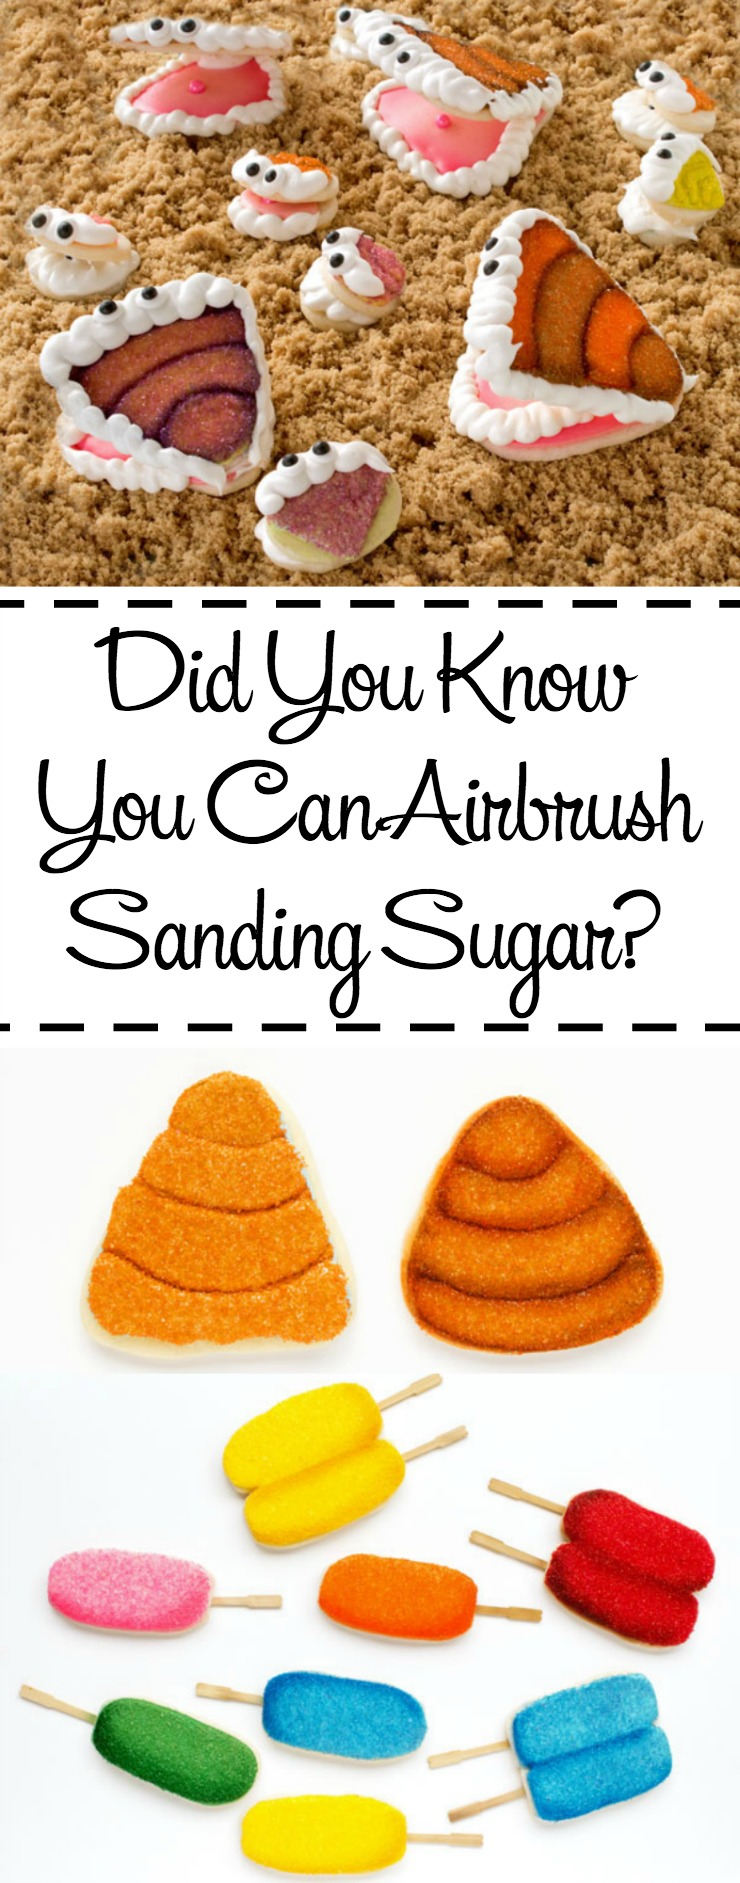 Did you Know You Can Airbrush Sanding Sugar? Learn how with this Clam Cookie Tutorial | The Bearfoot Baker